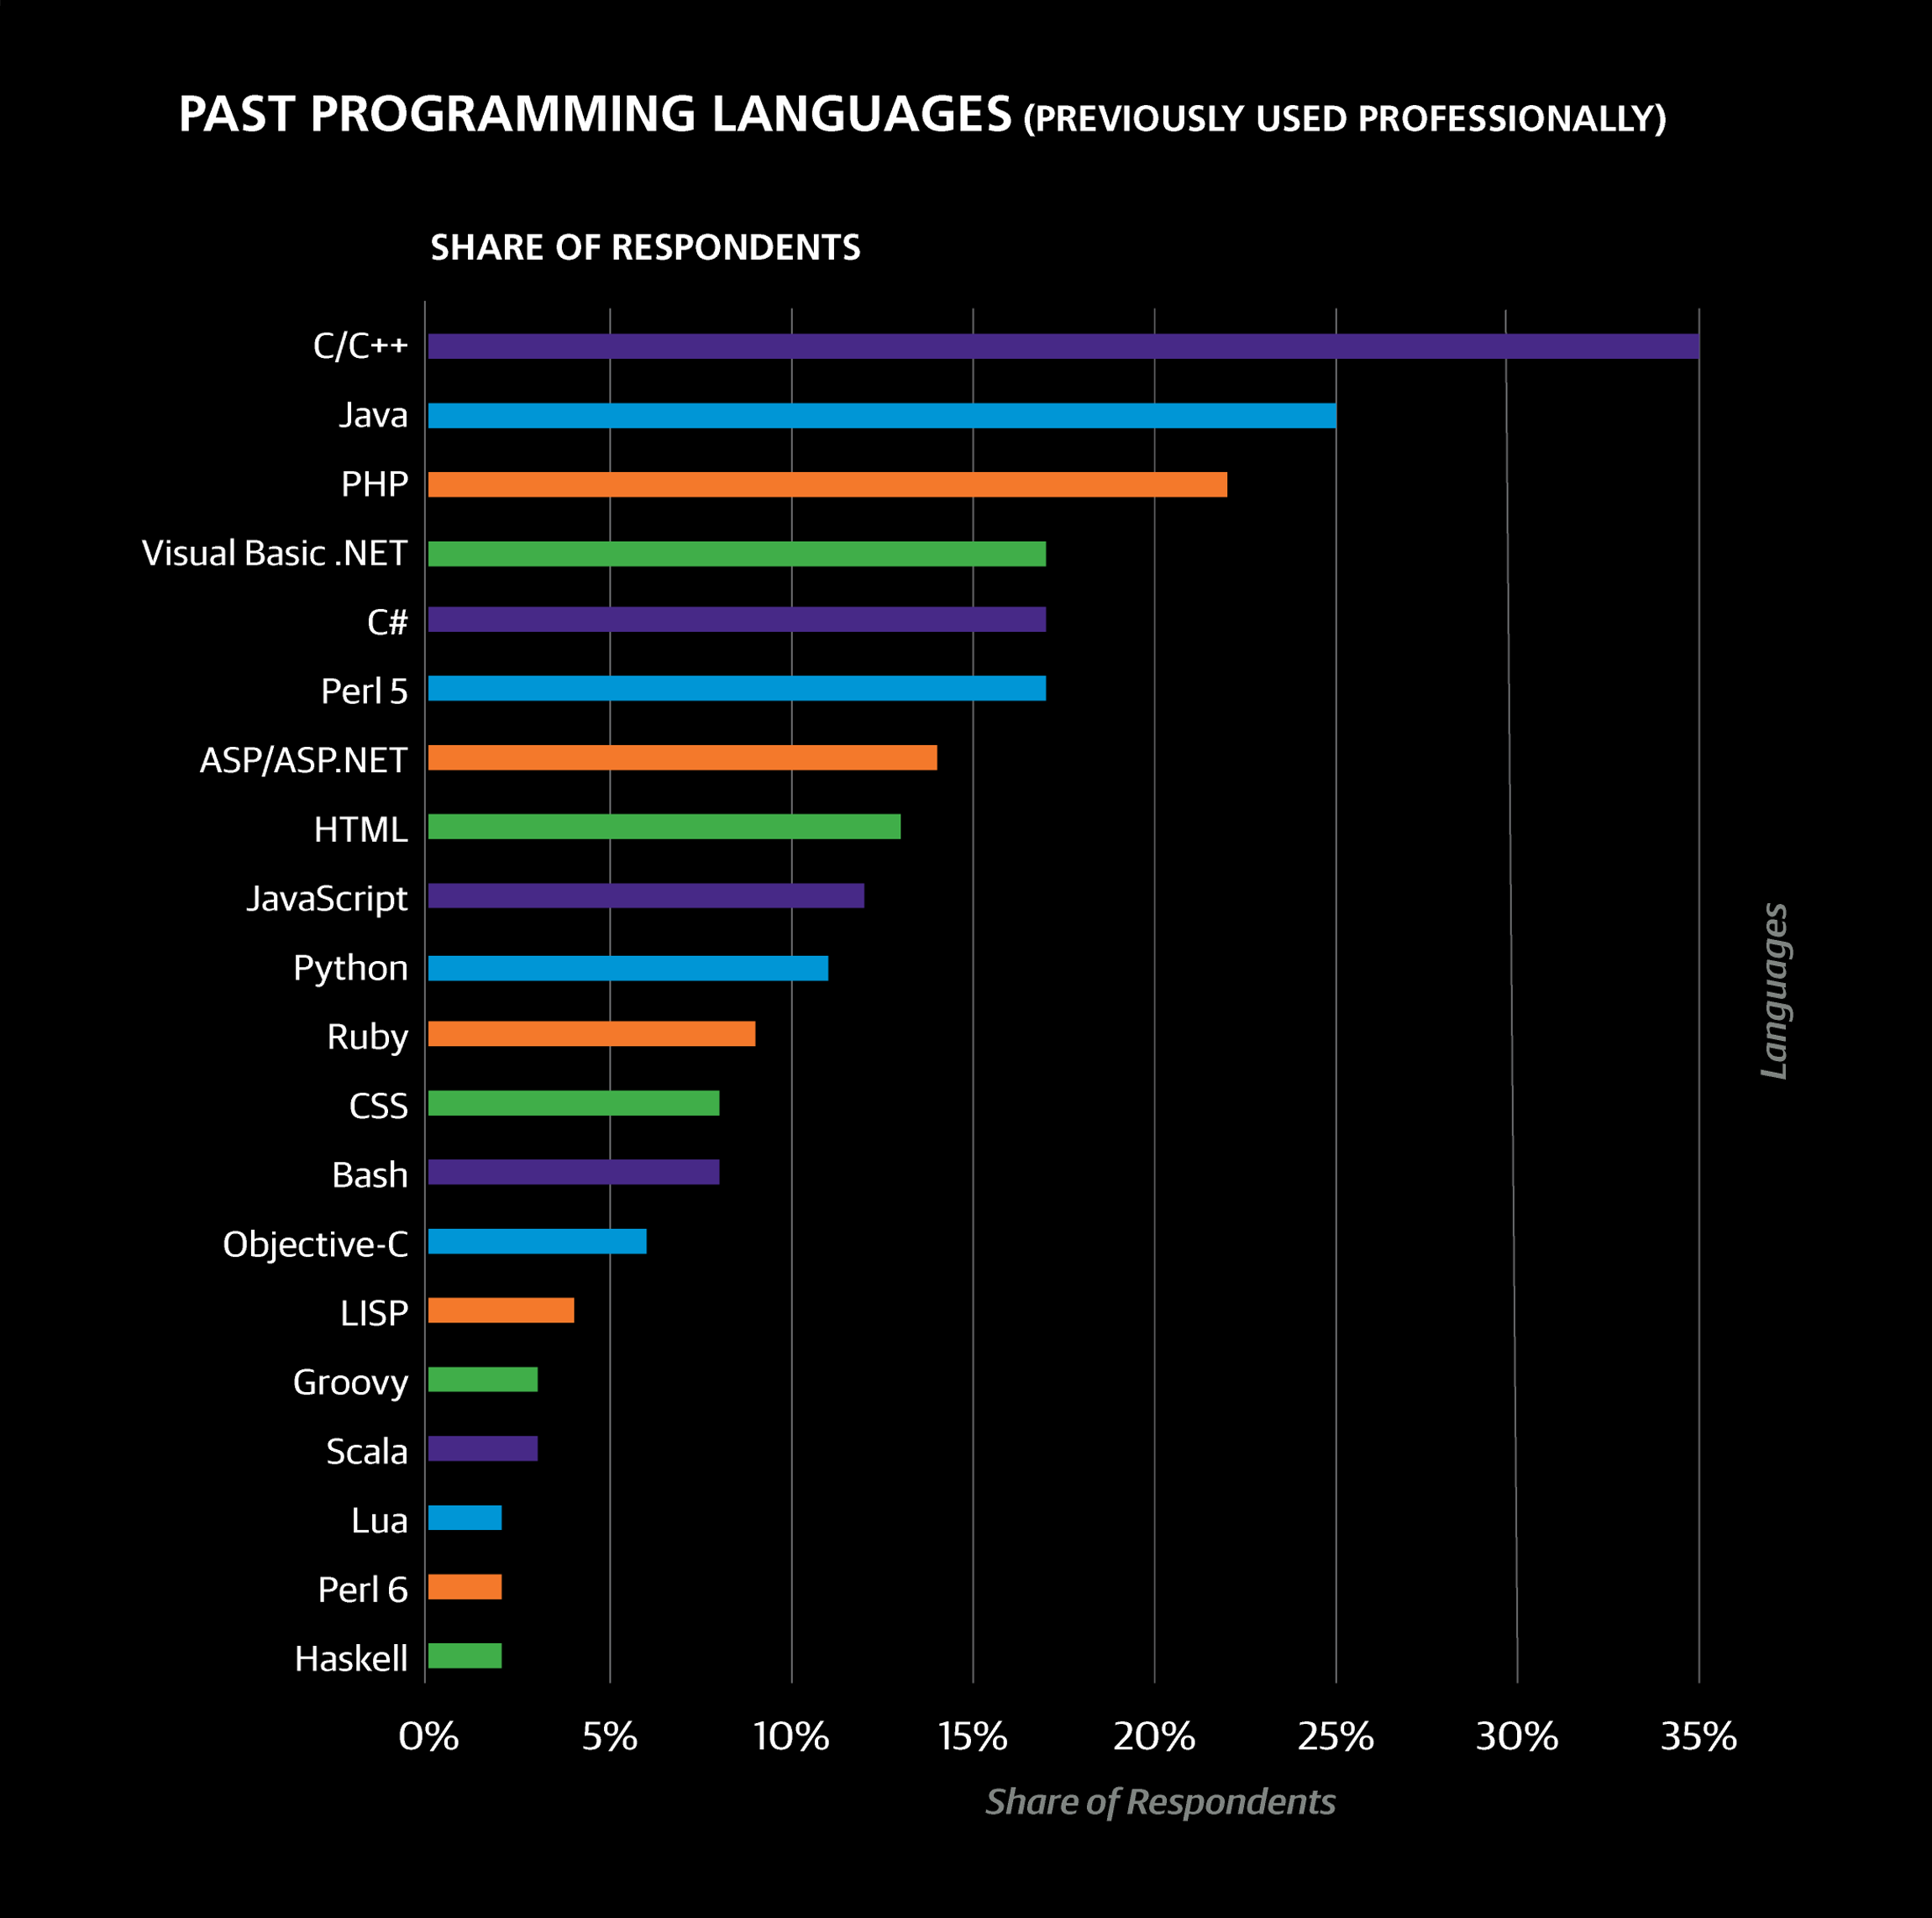 Software systems engineering salary -  Were Perl 5 Java Clojure Median Salary 107k Lisp Html Swift 104k Ruby Java Clojure 102k And Perl 5 Ruby Swift 100k